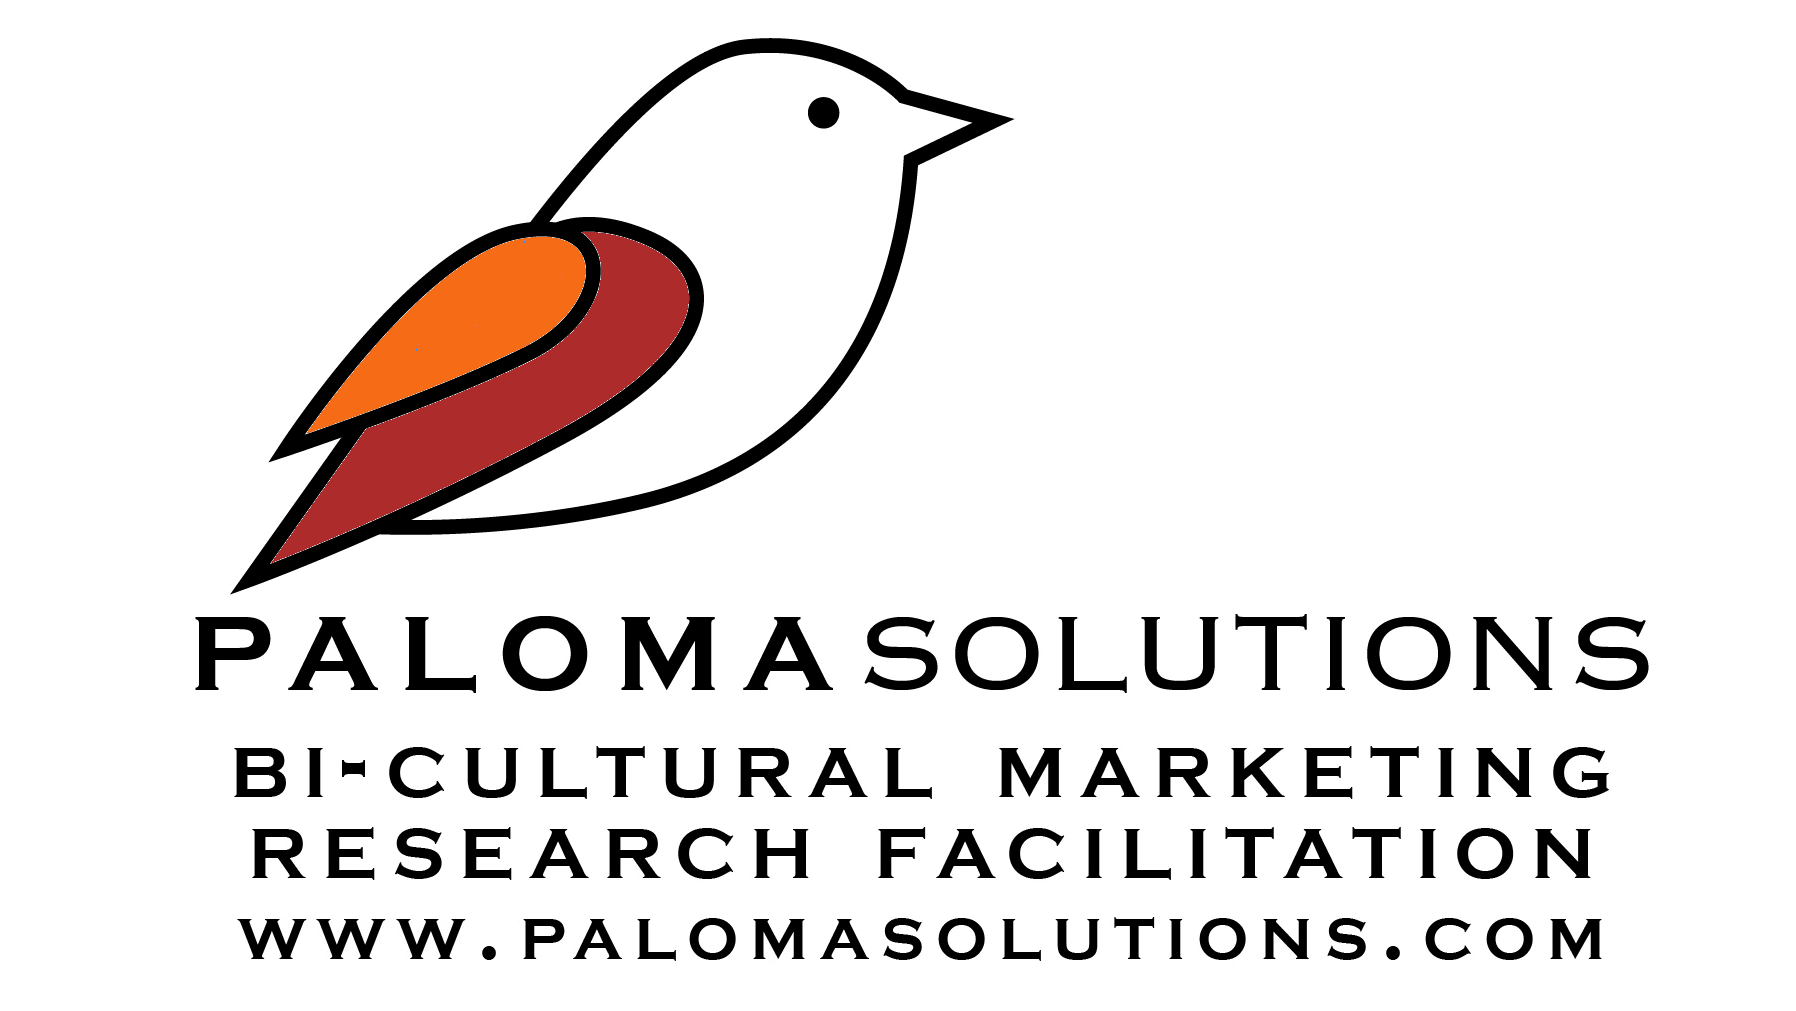 Paloma Solutions